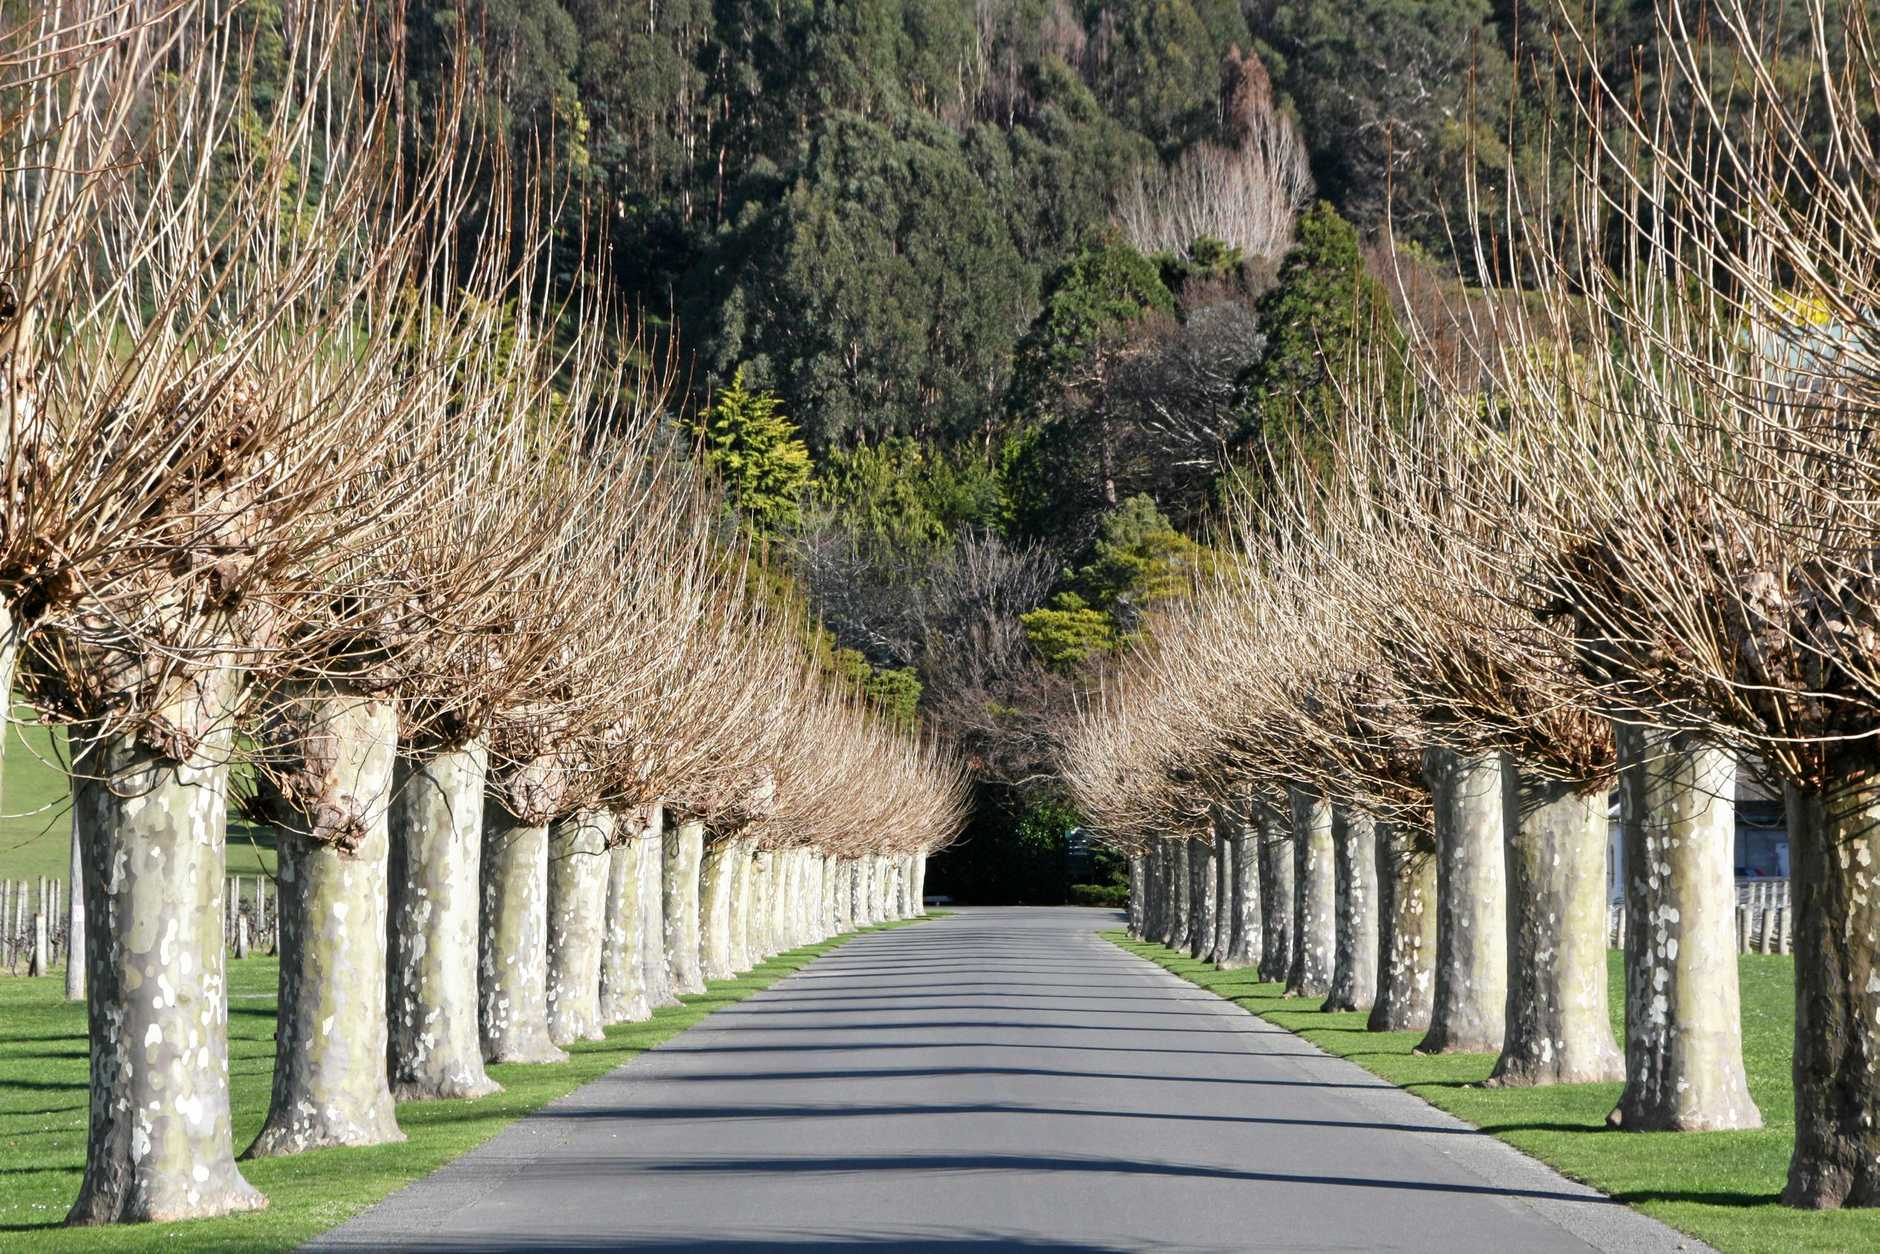 The entrance to Mission Estate Winery at Taradale, Hawkes Bay.